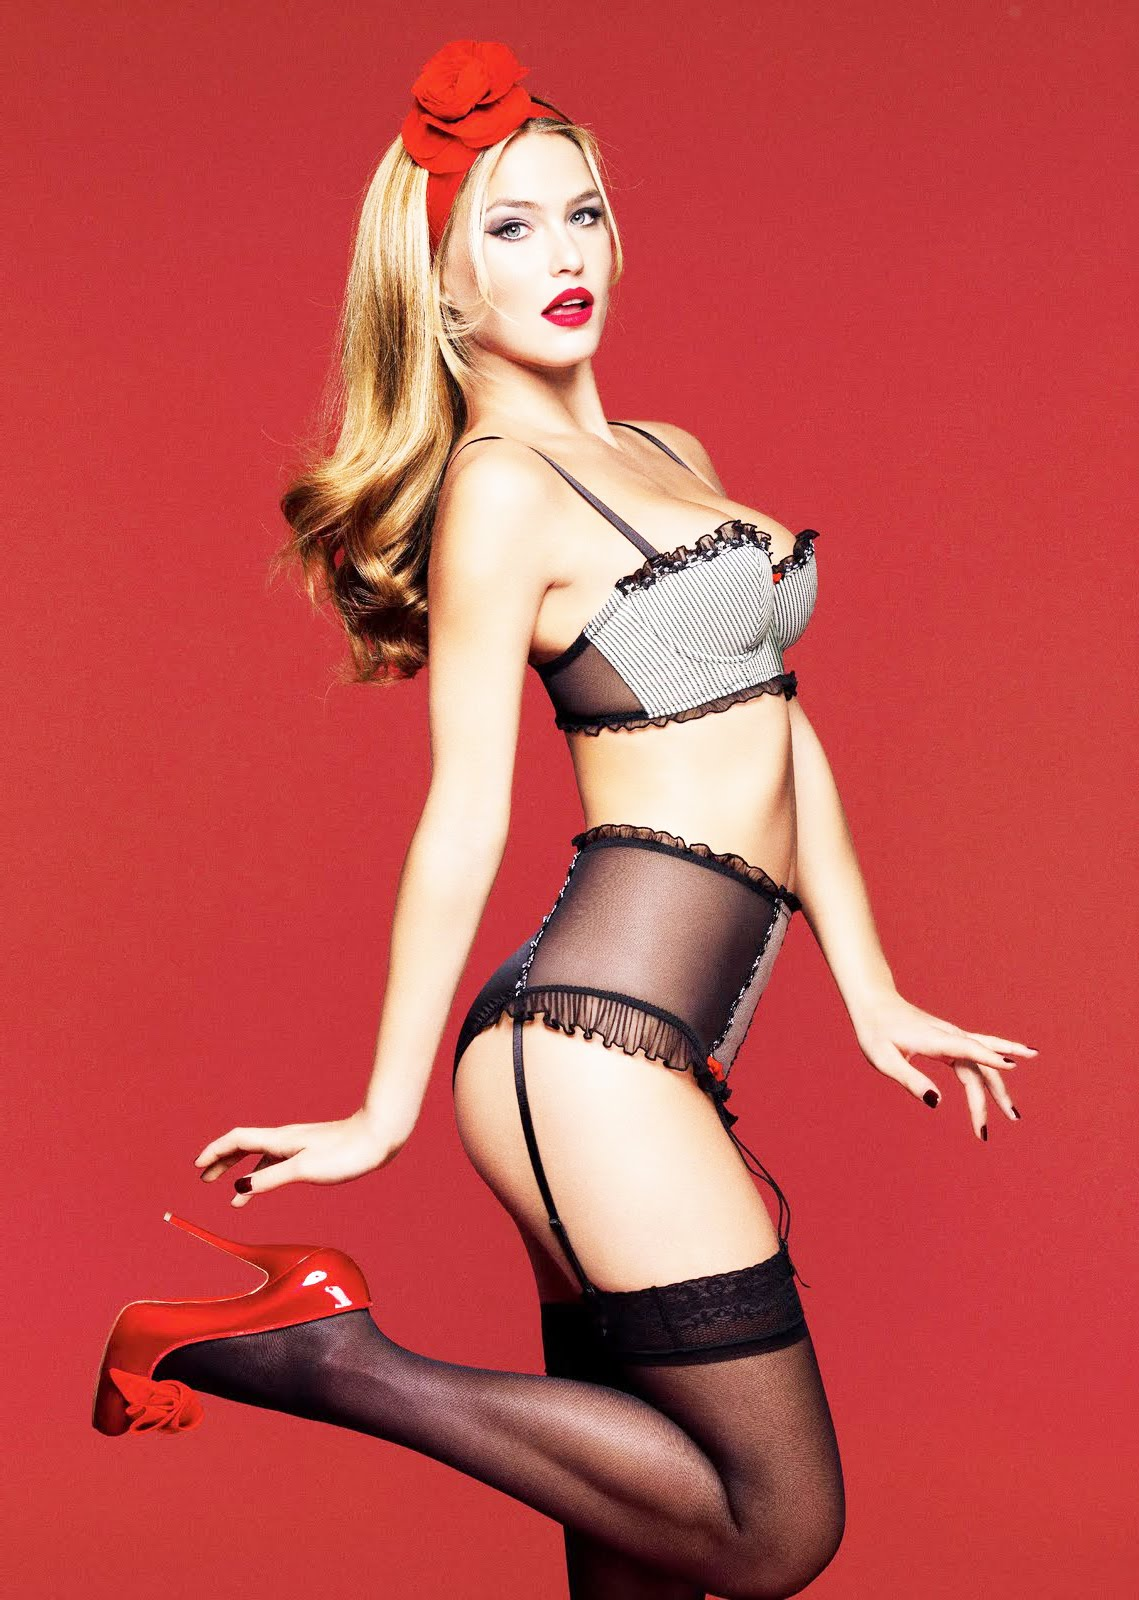 Pantyhose celebrities: Bar Refaeli in black Stockings :  refaeli black in pamtyhose